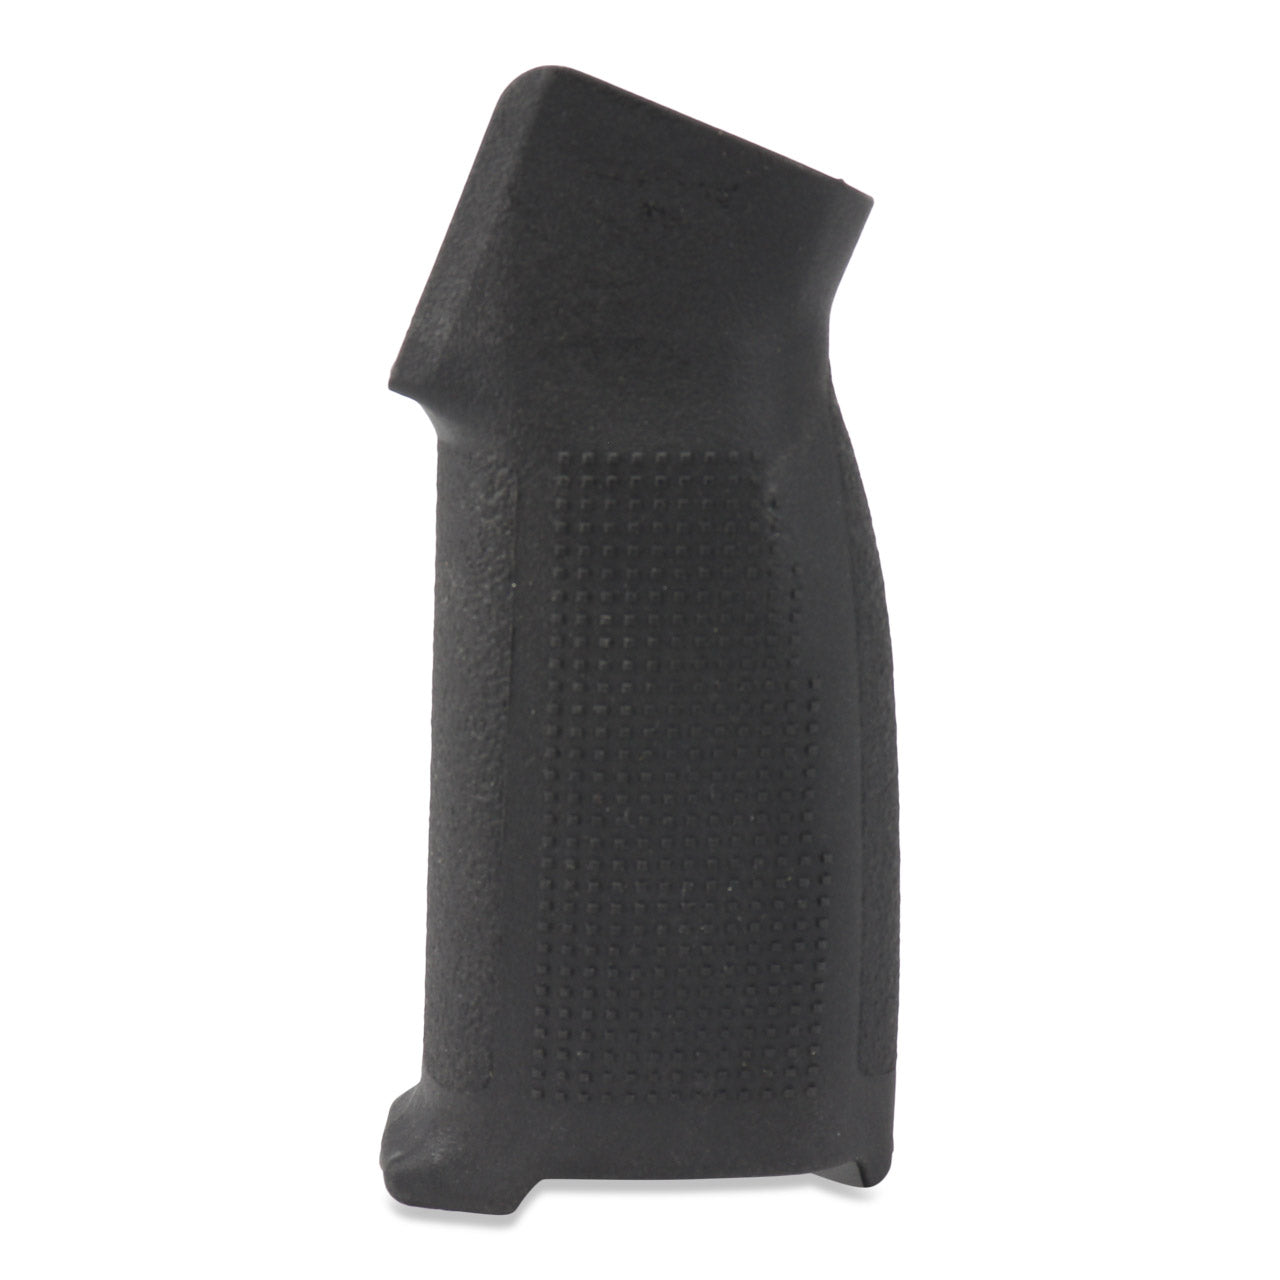 PTS Enhanced Polymer Grip Compact (EPG-C) for M4 AEG Airsoft Rifles